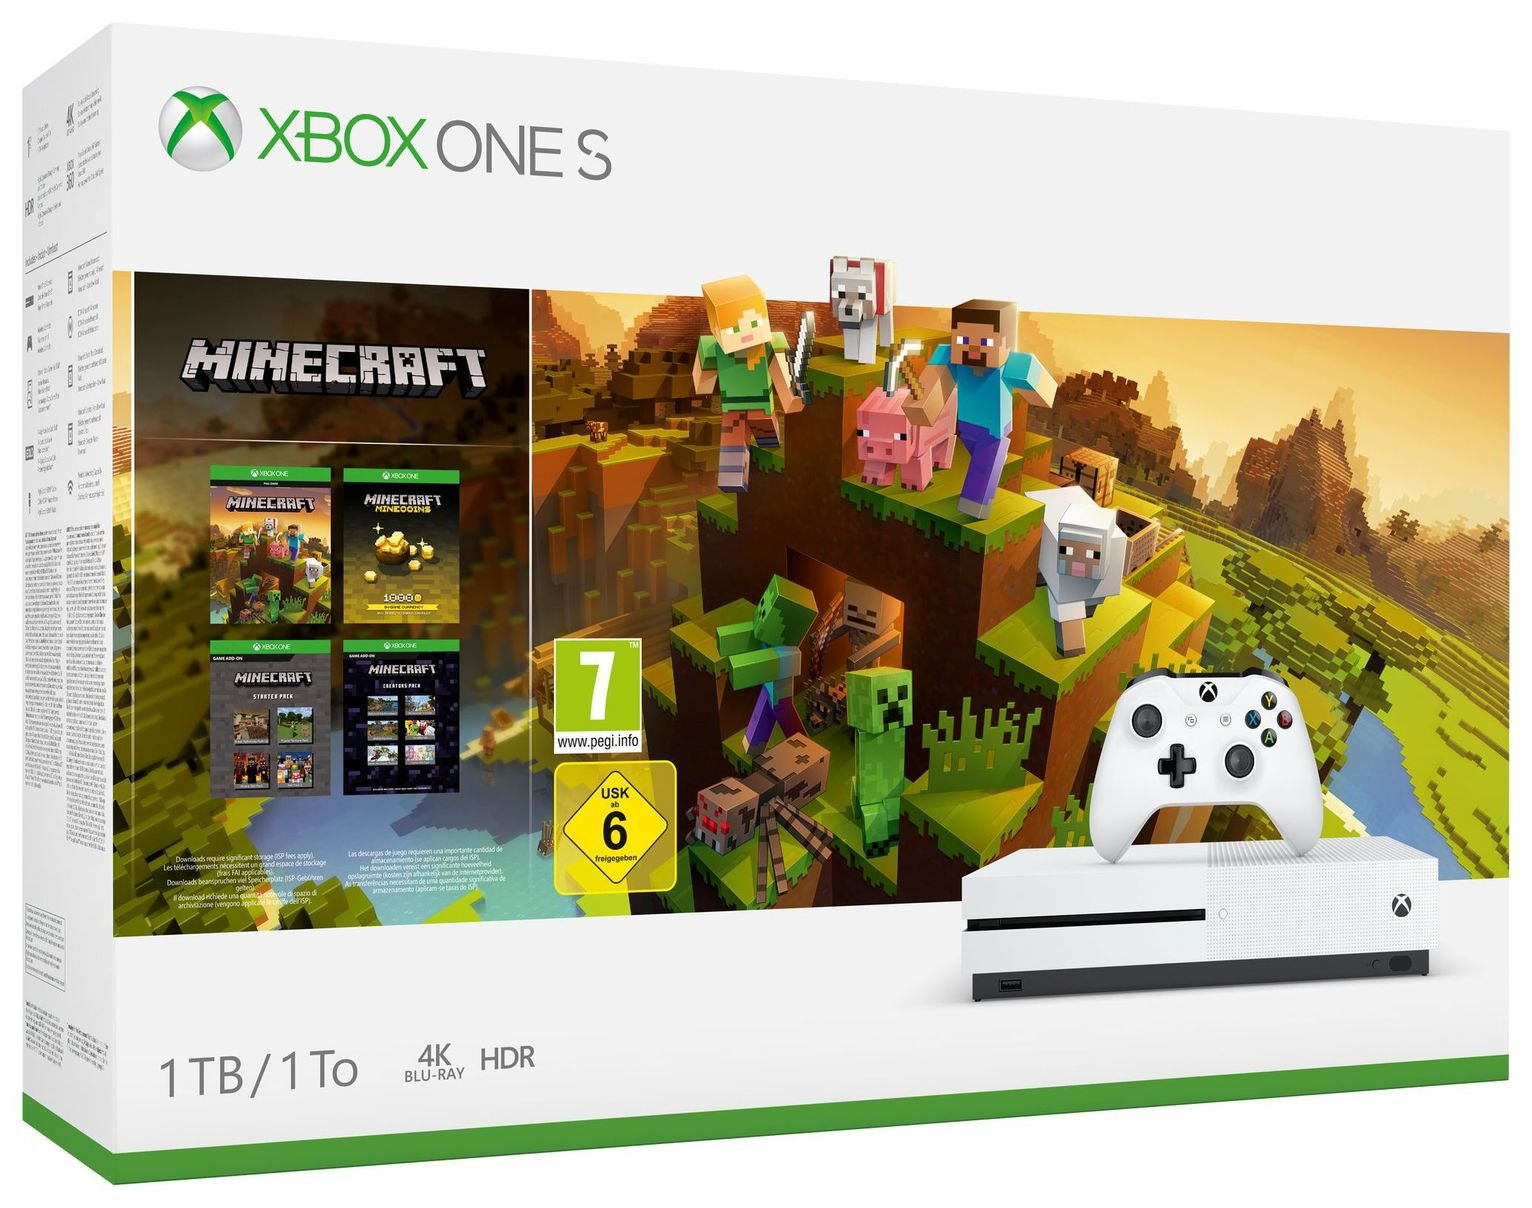 Xbox One S 1TB Console & Minecraft Creators Bundle